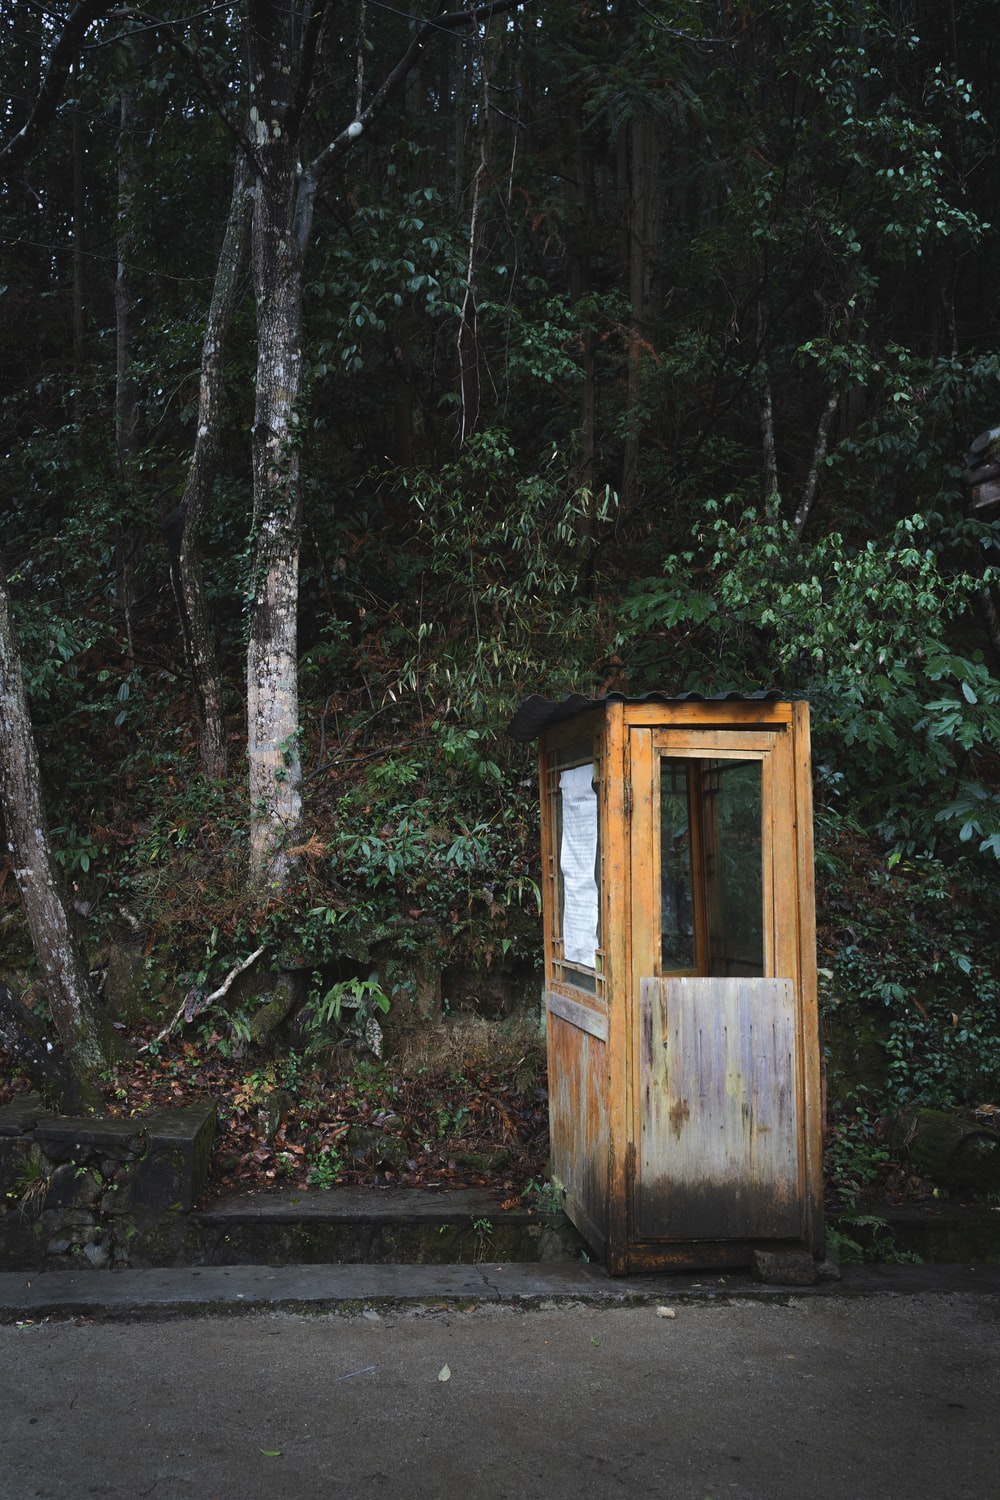 brown wooden shed in forest during daytime